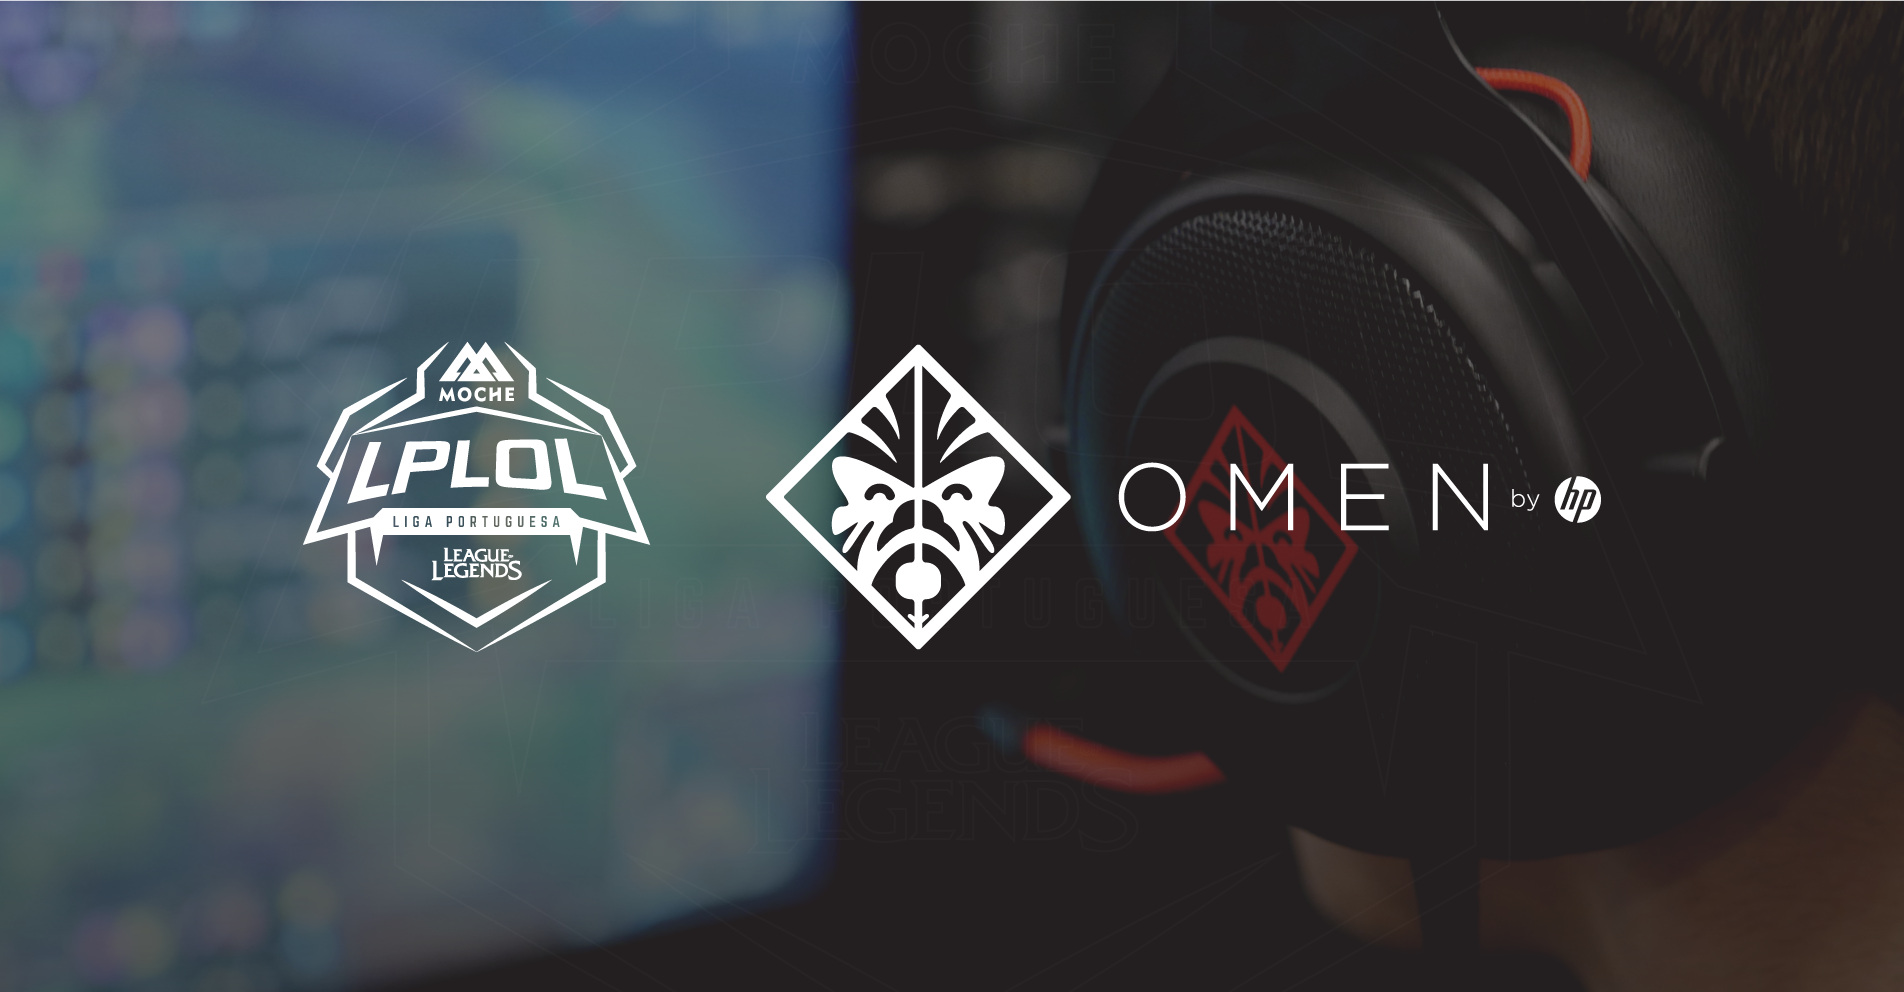 Omen by HP é o parceiro tecnológico da Liga Portuguesa de League of Legends